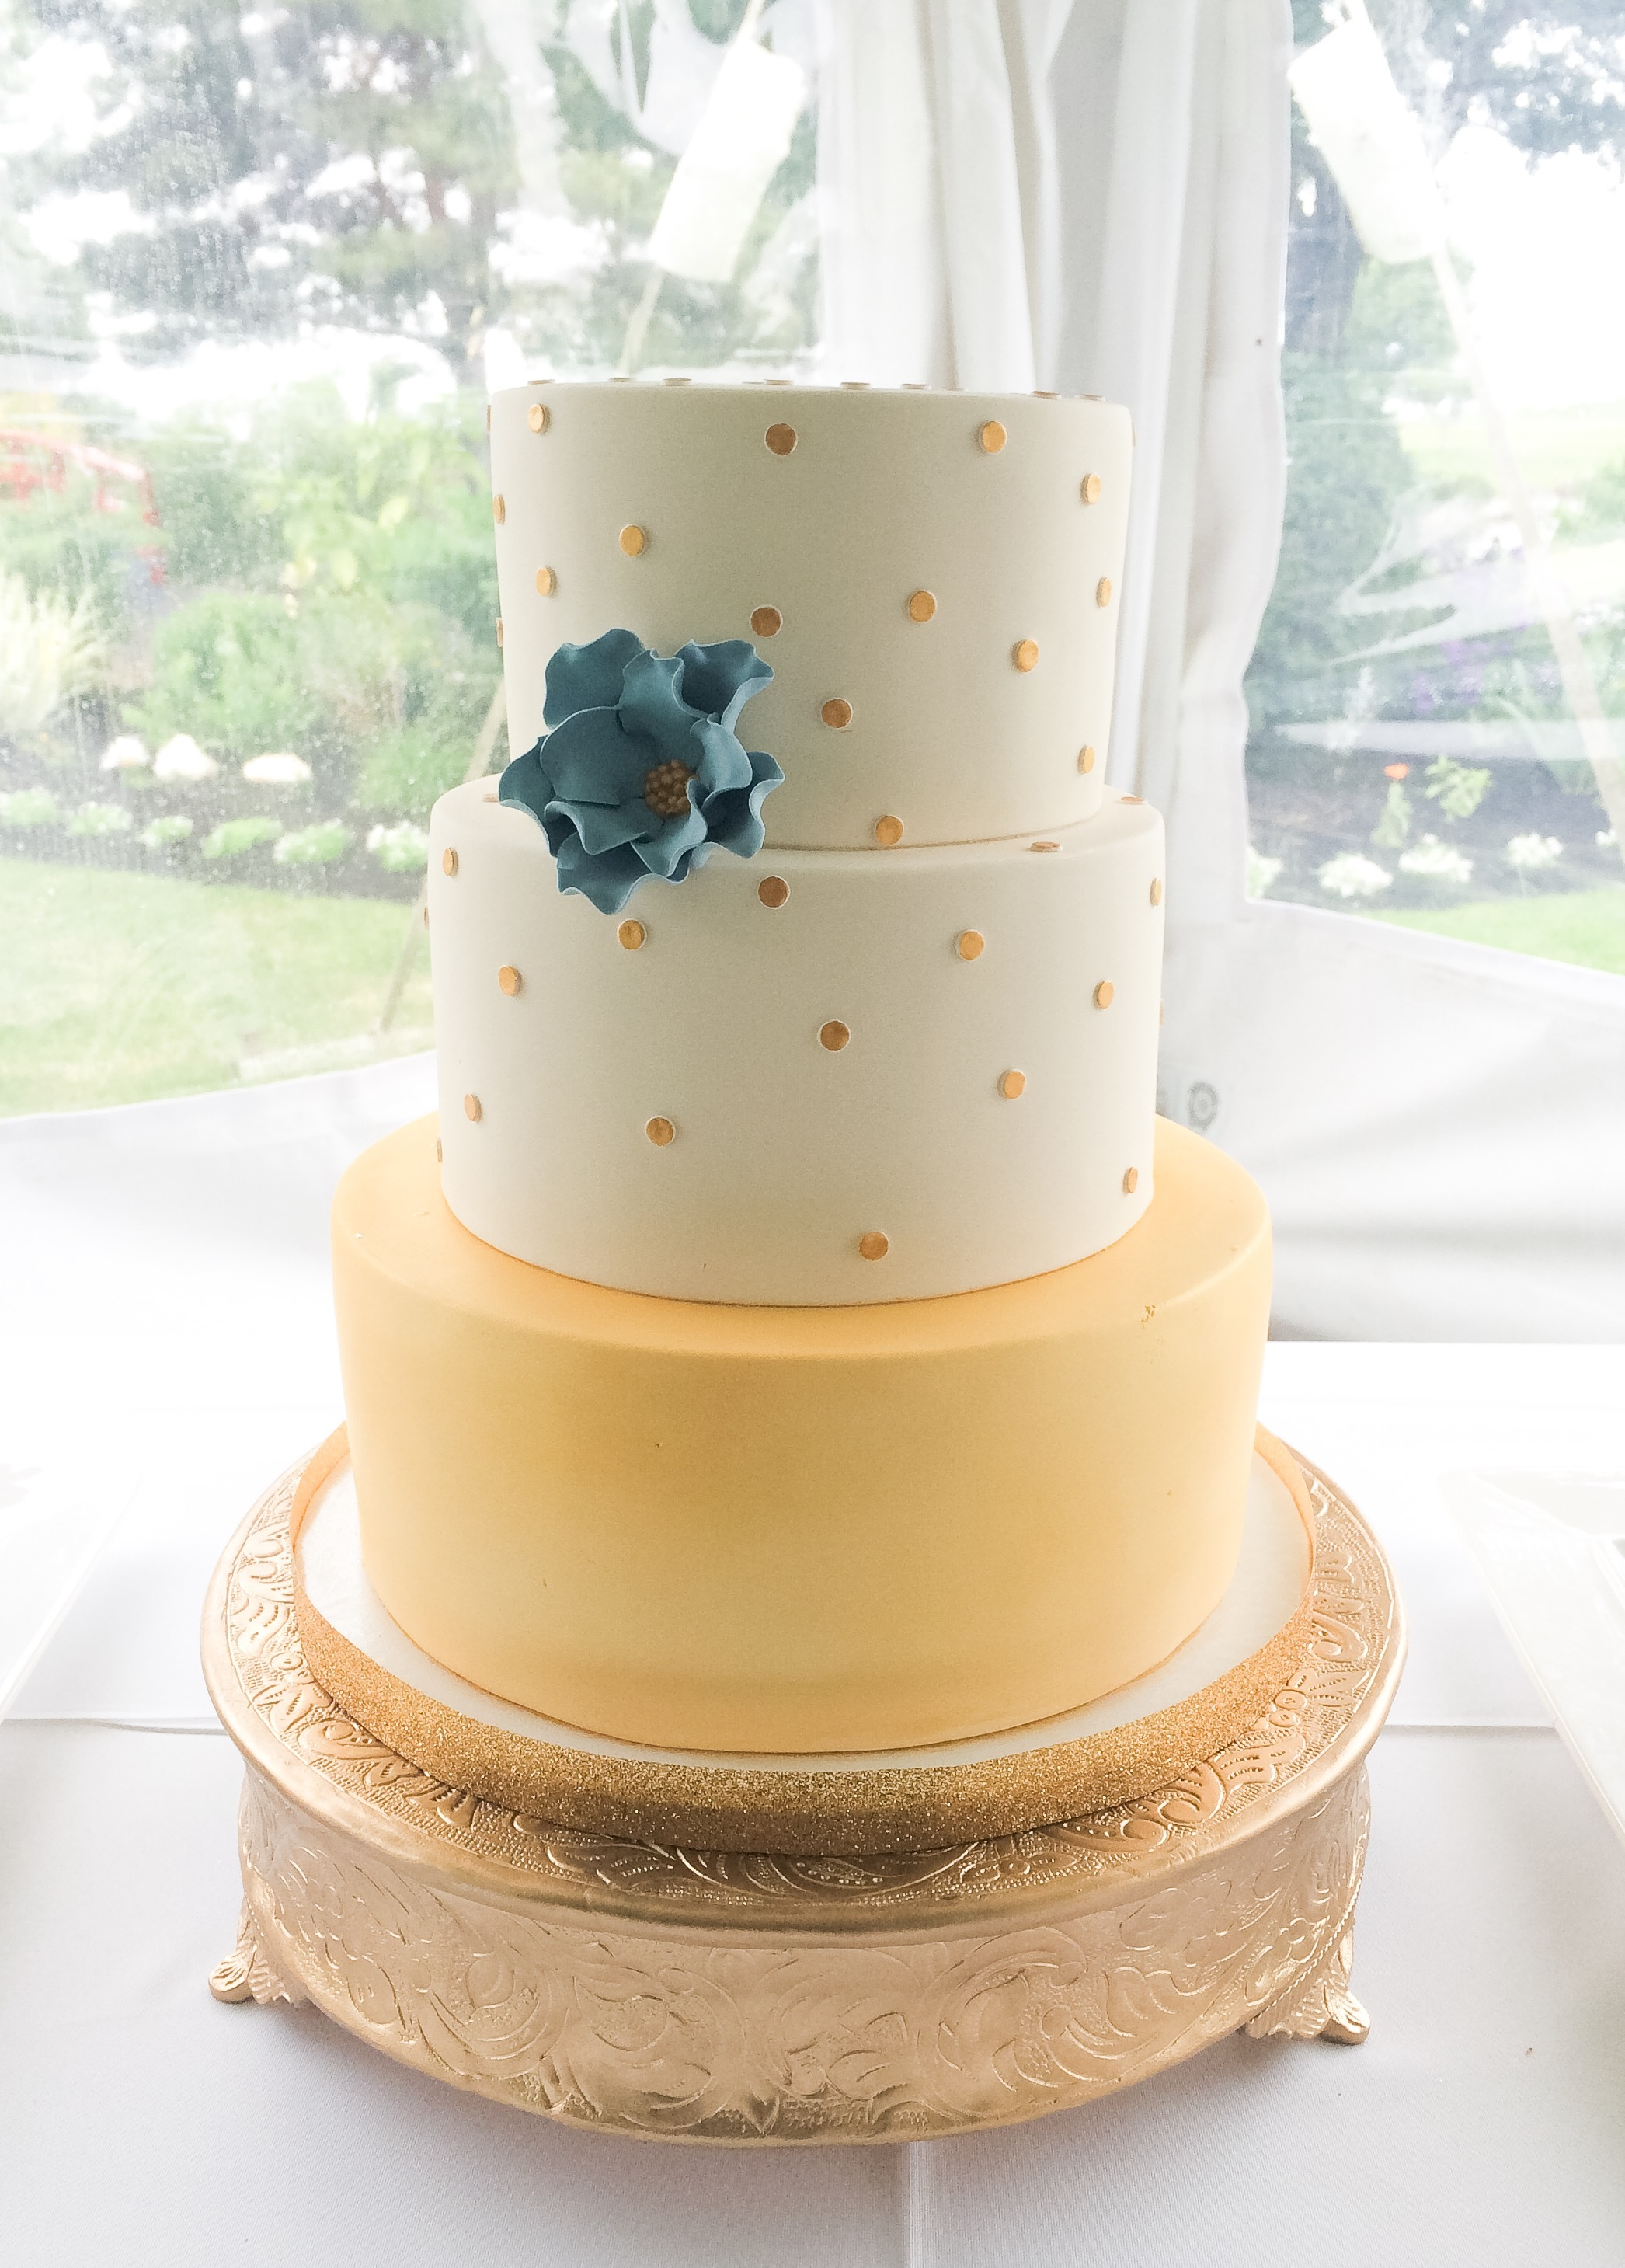 White & pastel yellow polka dot wedding